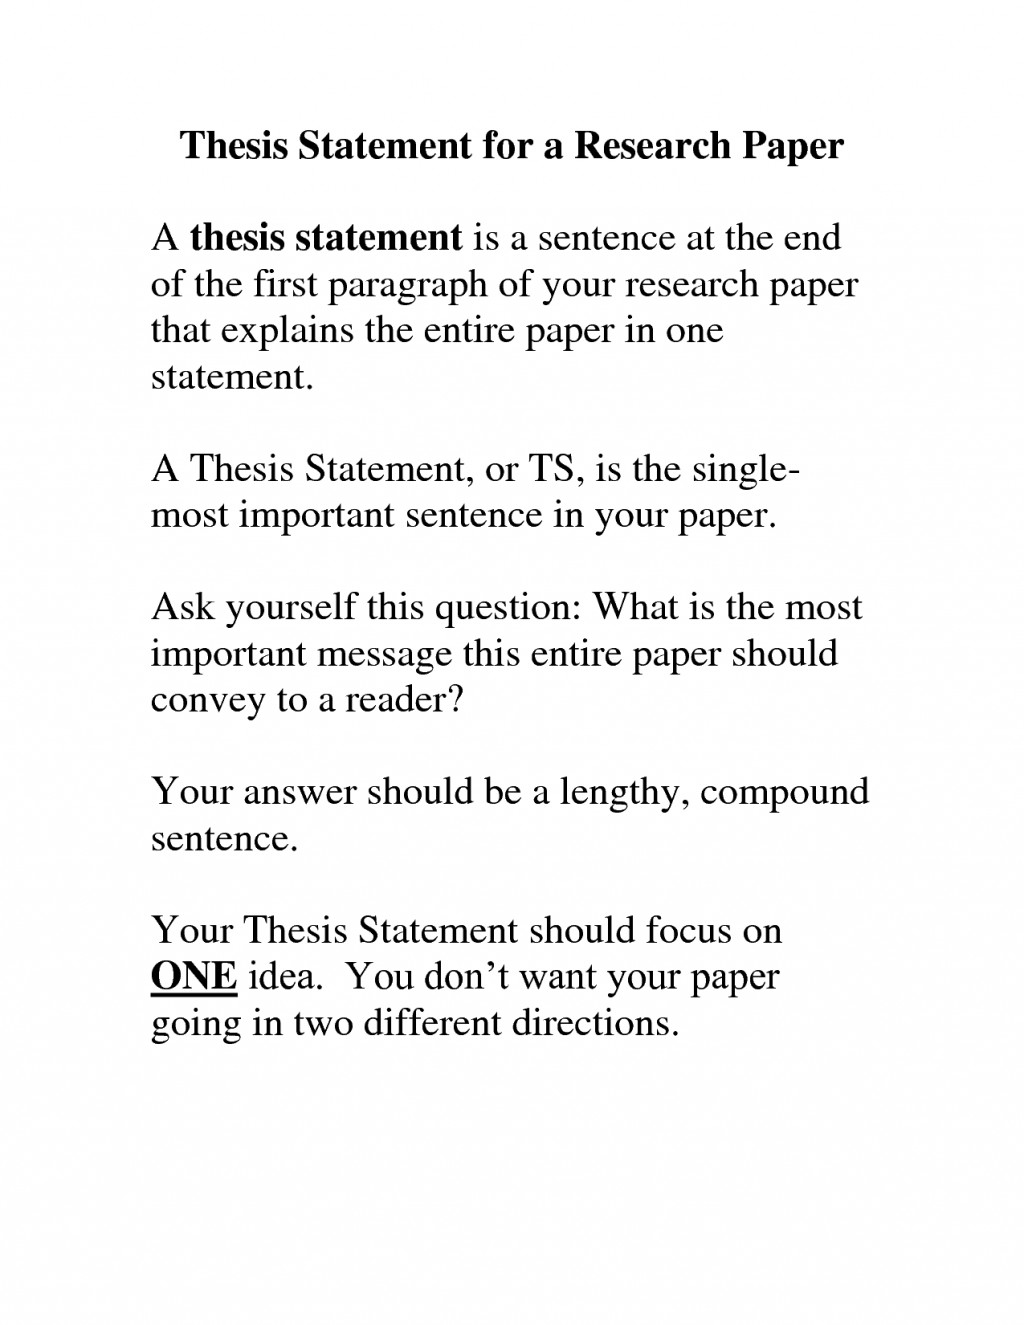 001 Research Paper How To Write Thesis Statement Wonderful A For High School In Mla Format Ppt Large